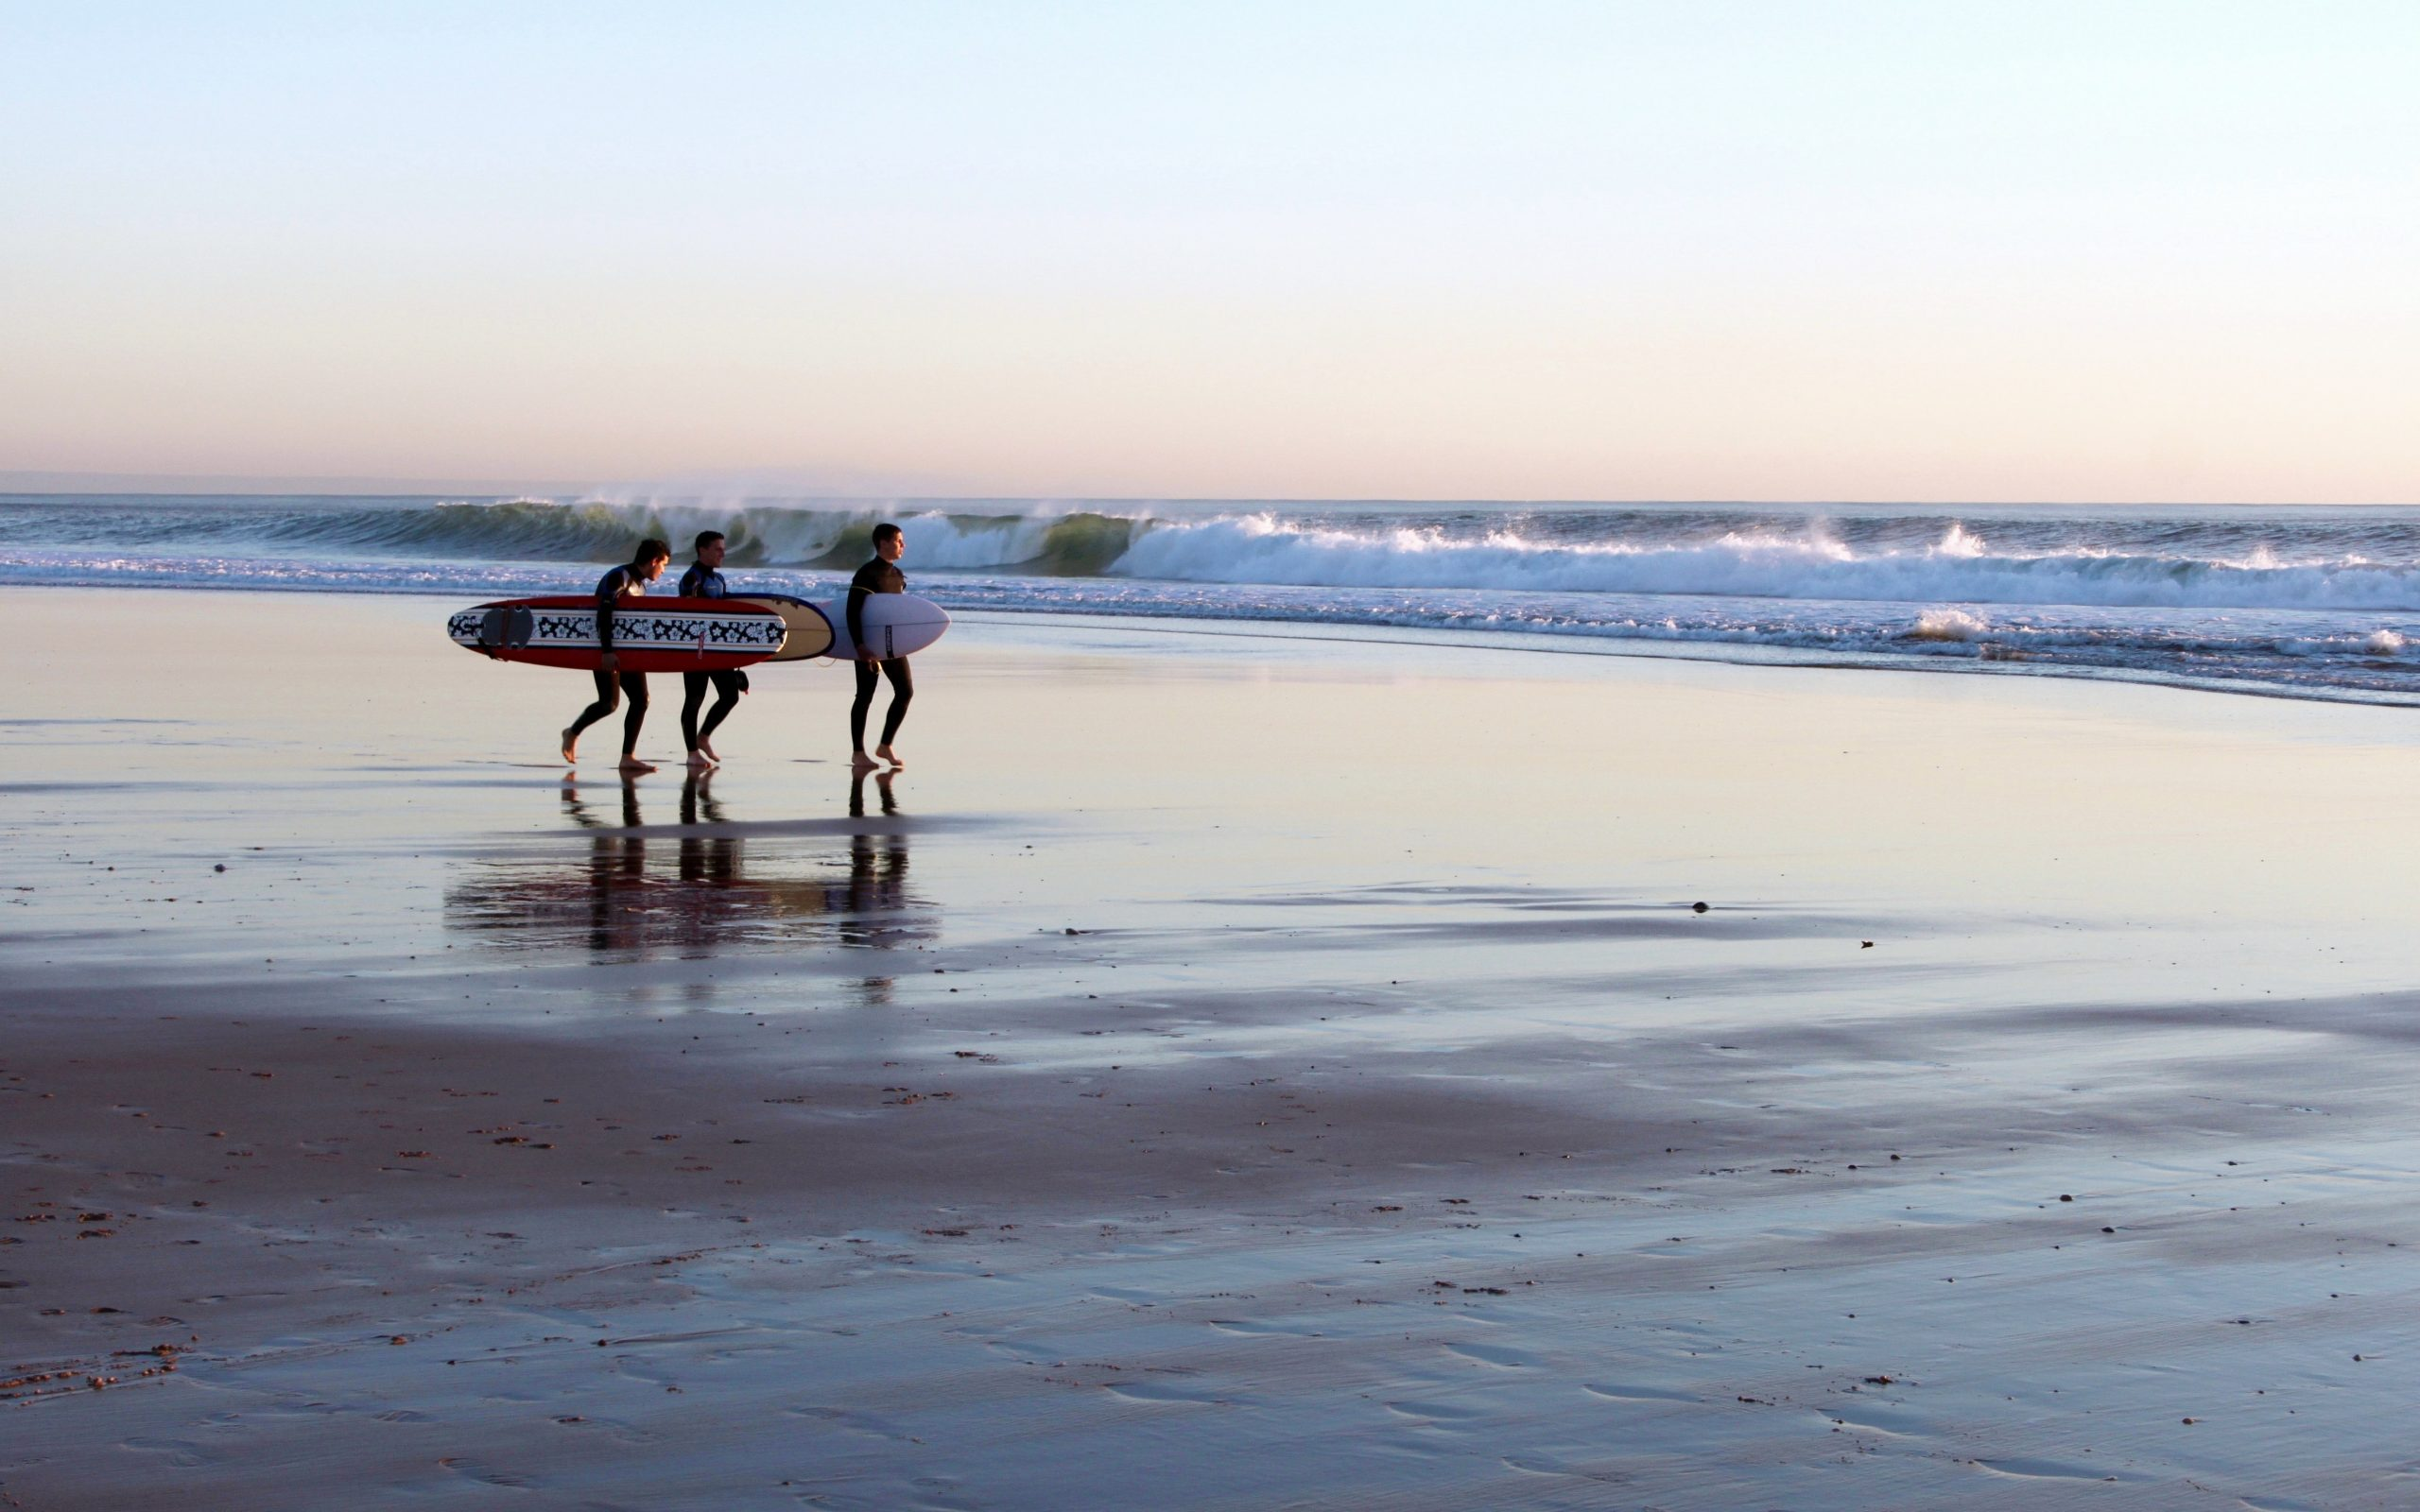 three men carrying surfboards on a beach at dusk